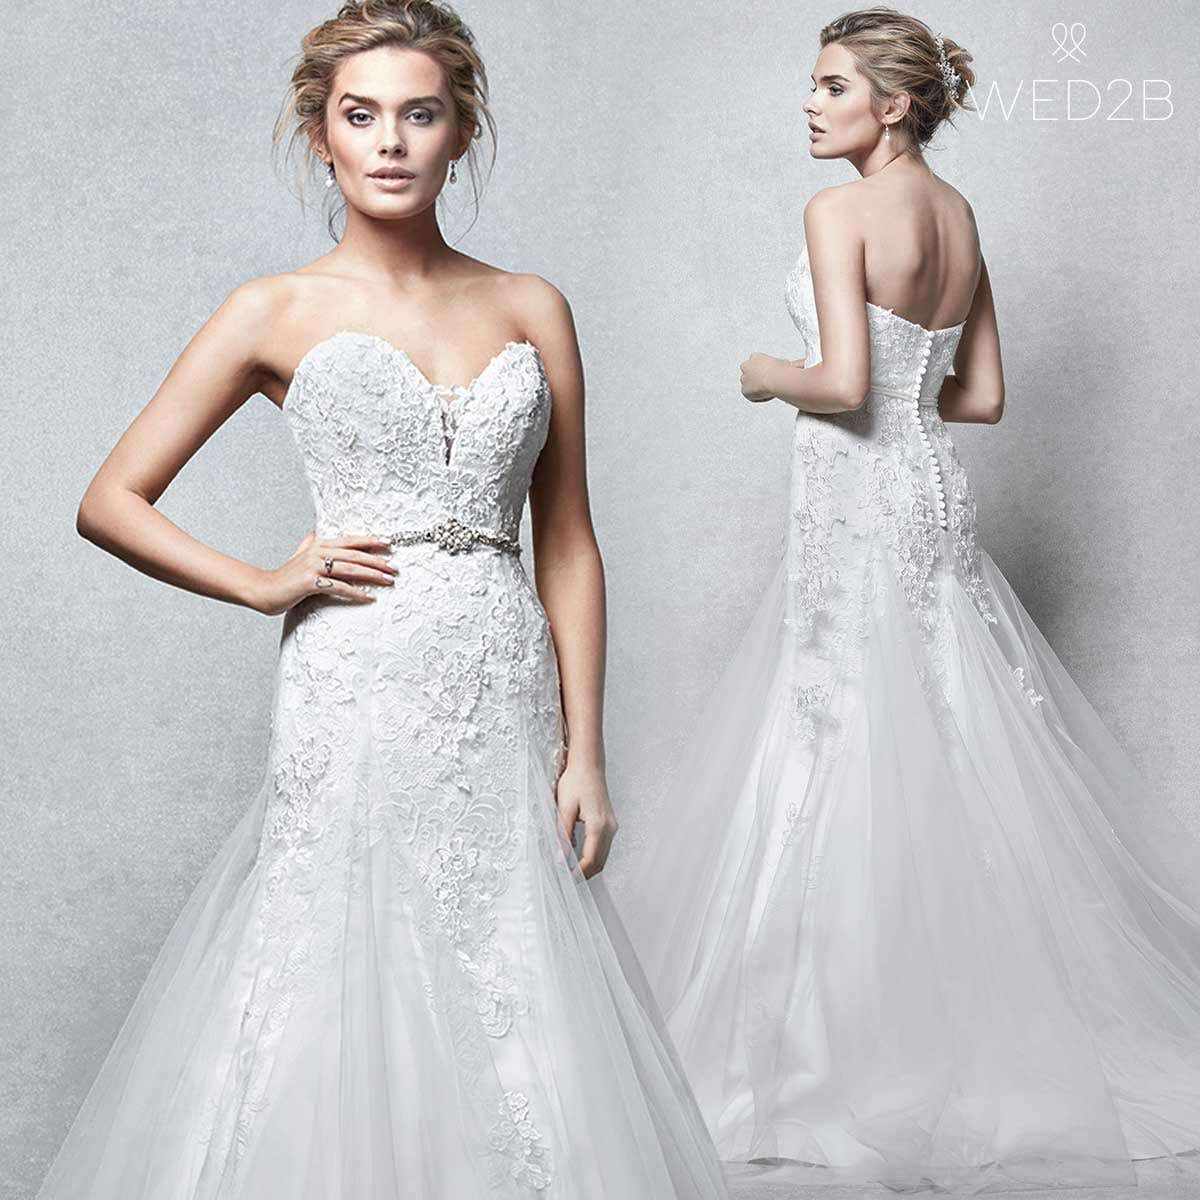 Verity Stunning fit and flare wedding dress